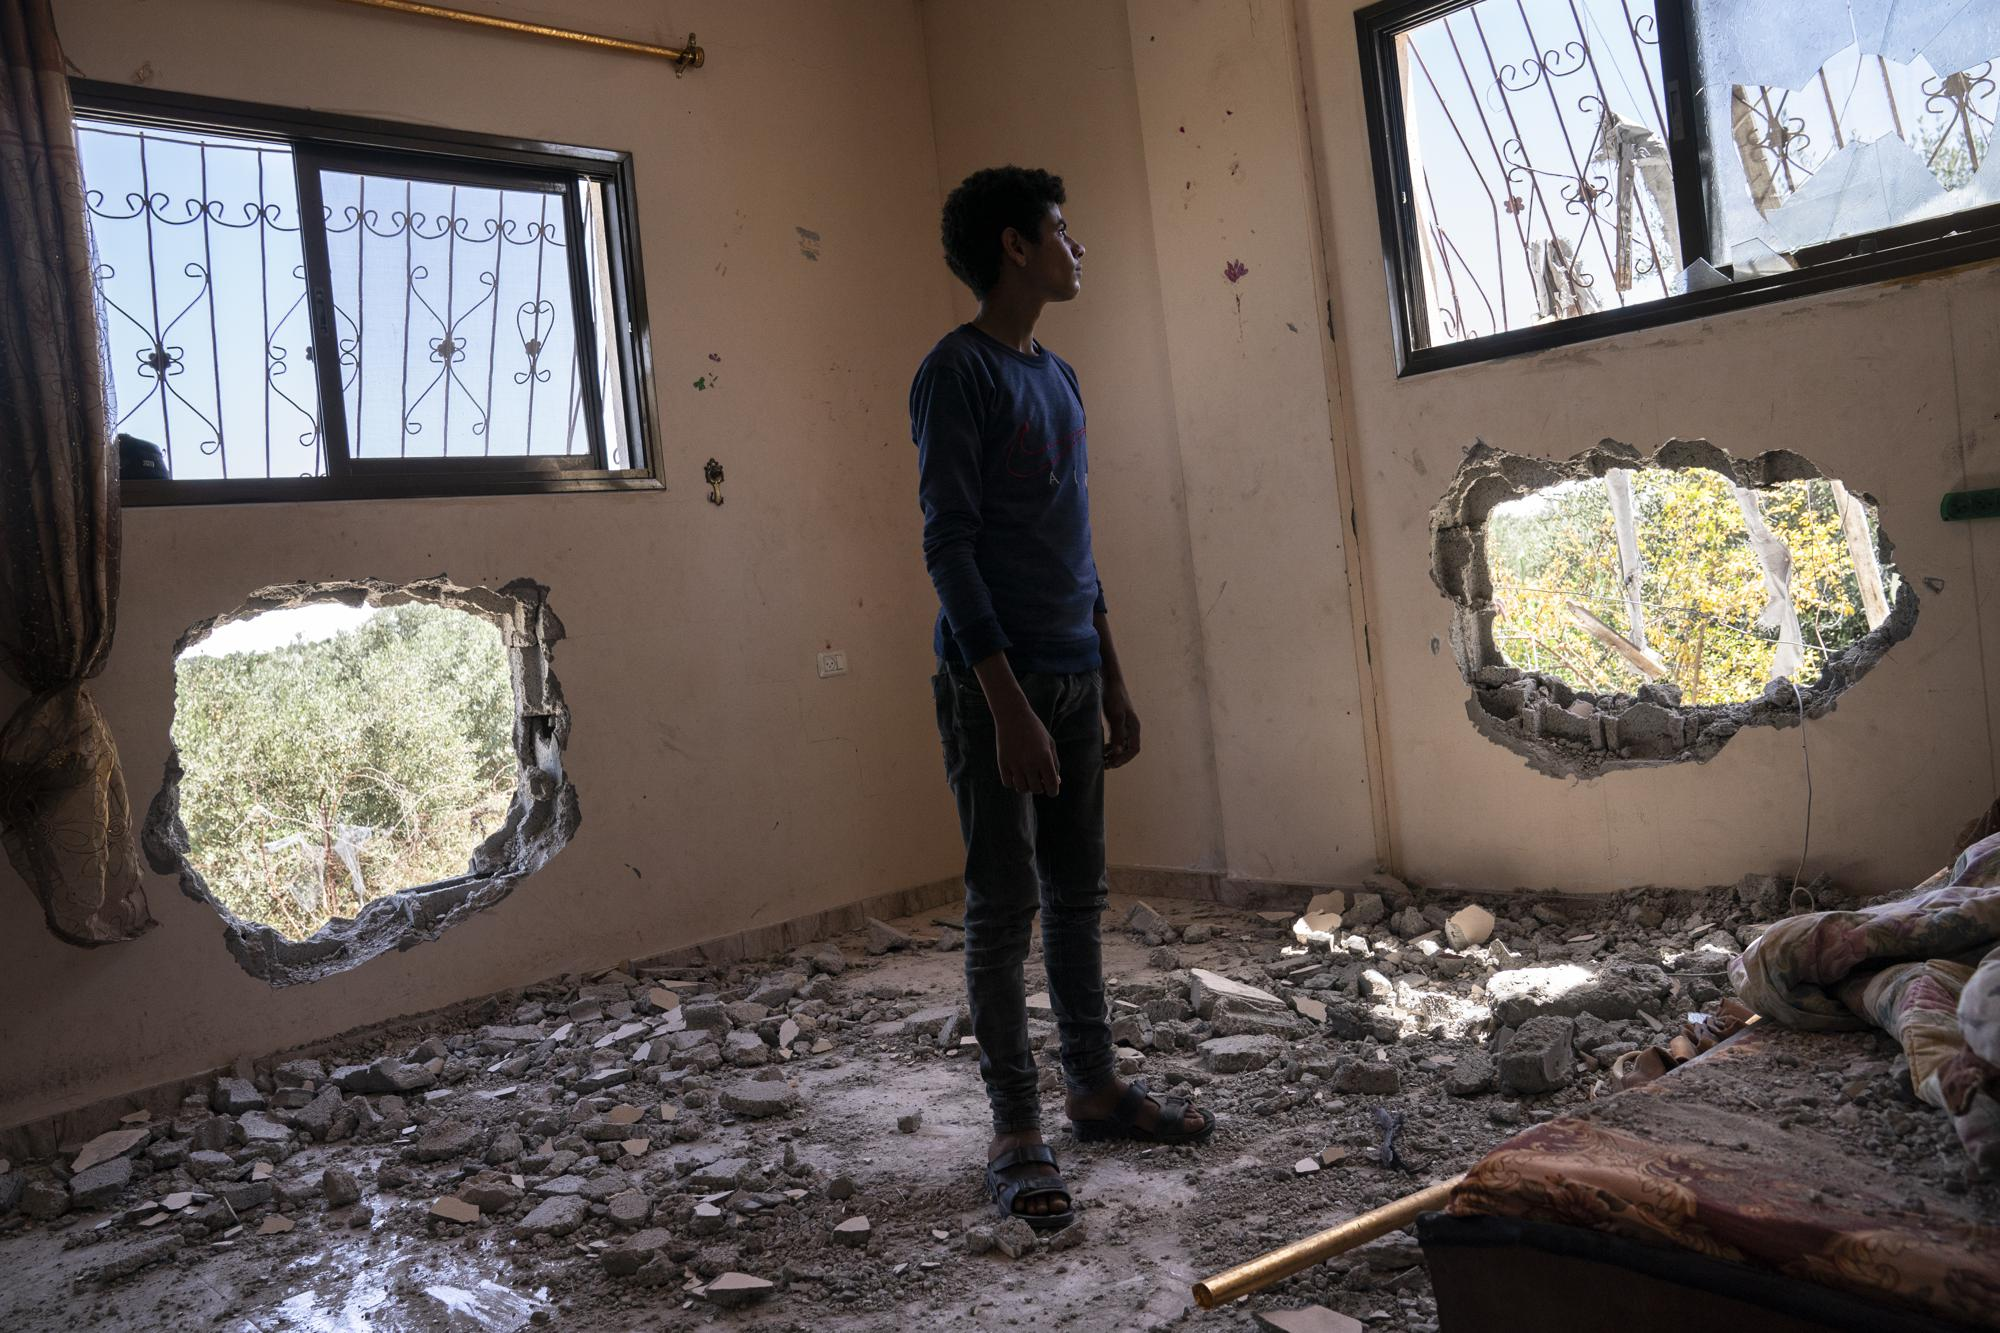 Issat Al-Masri, 18, stands for a portrait in his bedroom that was damaged by shelling prior to a cease-fire that halted an 11-day war between Gaza's Hamas rulers and Israel, Wednesday, May 26, 2021, in Beit Hanoun, Gaza Strip. (AP Photo/John Minchillo)